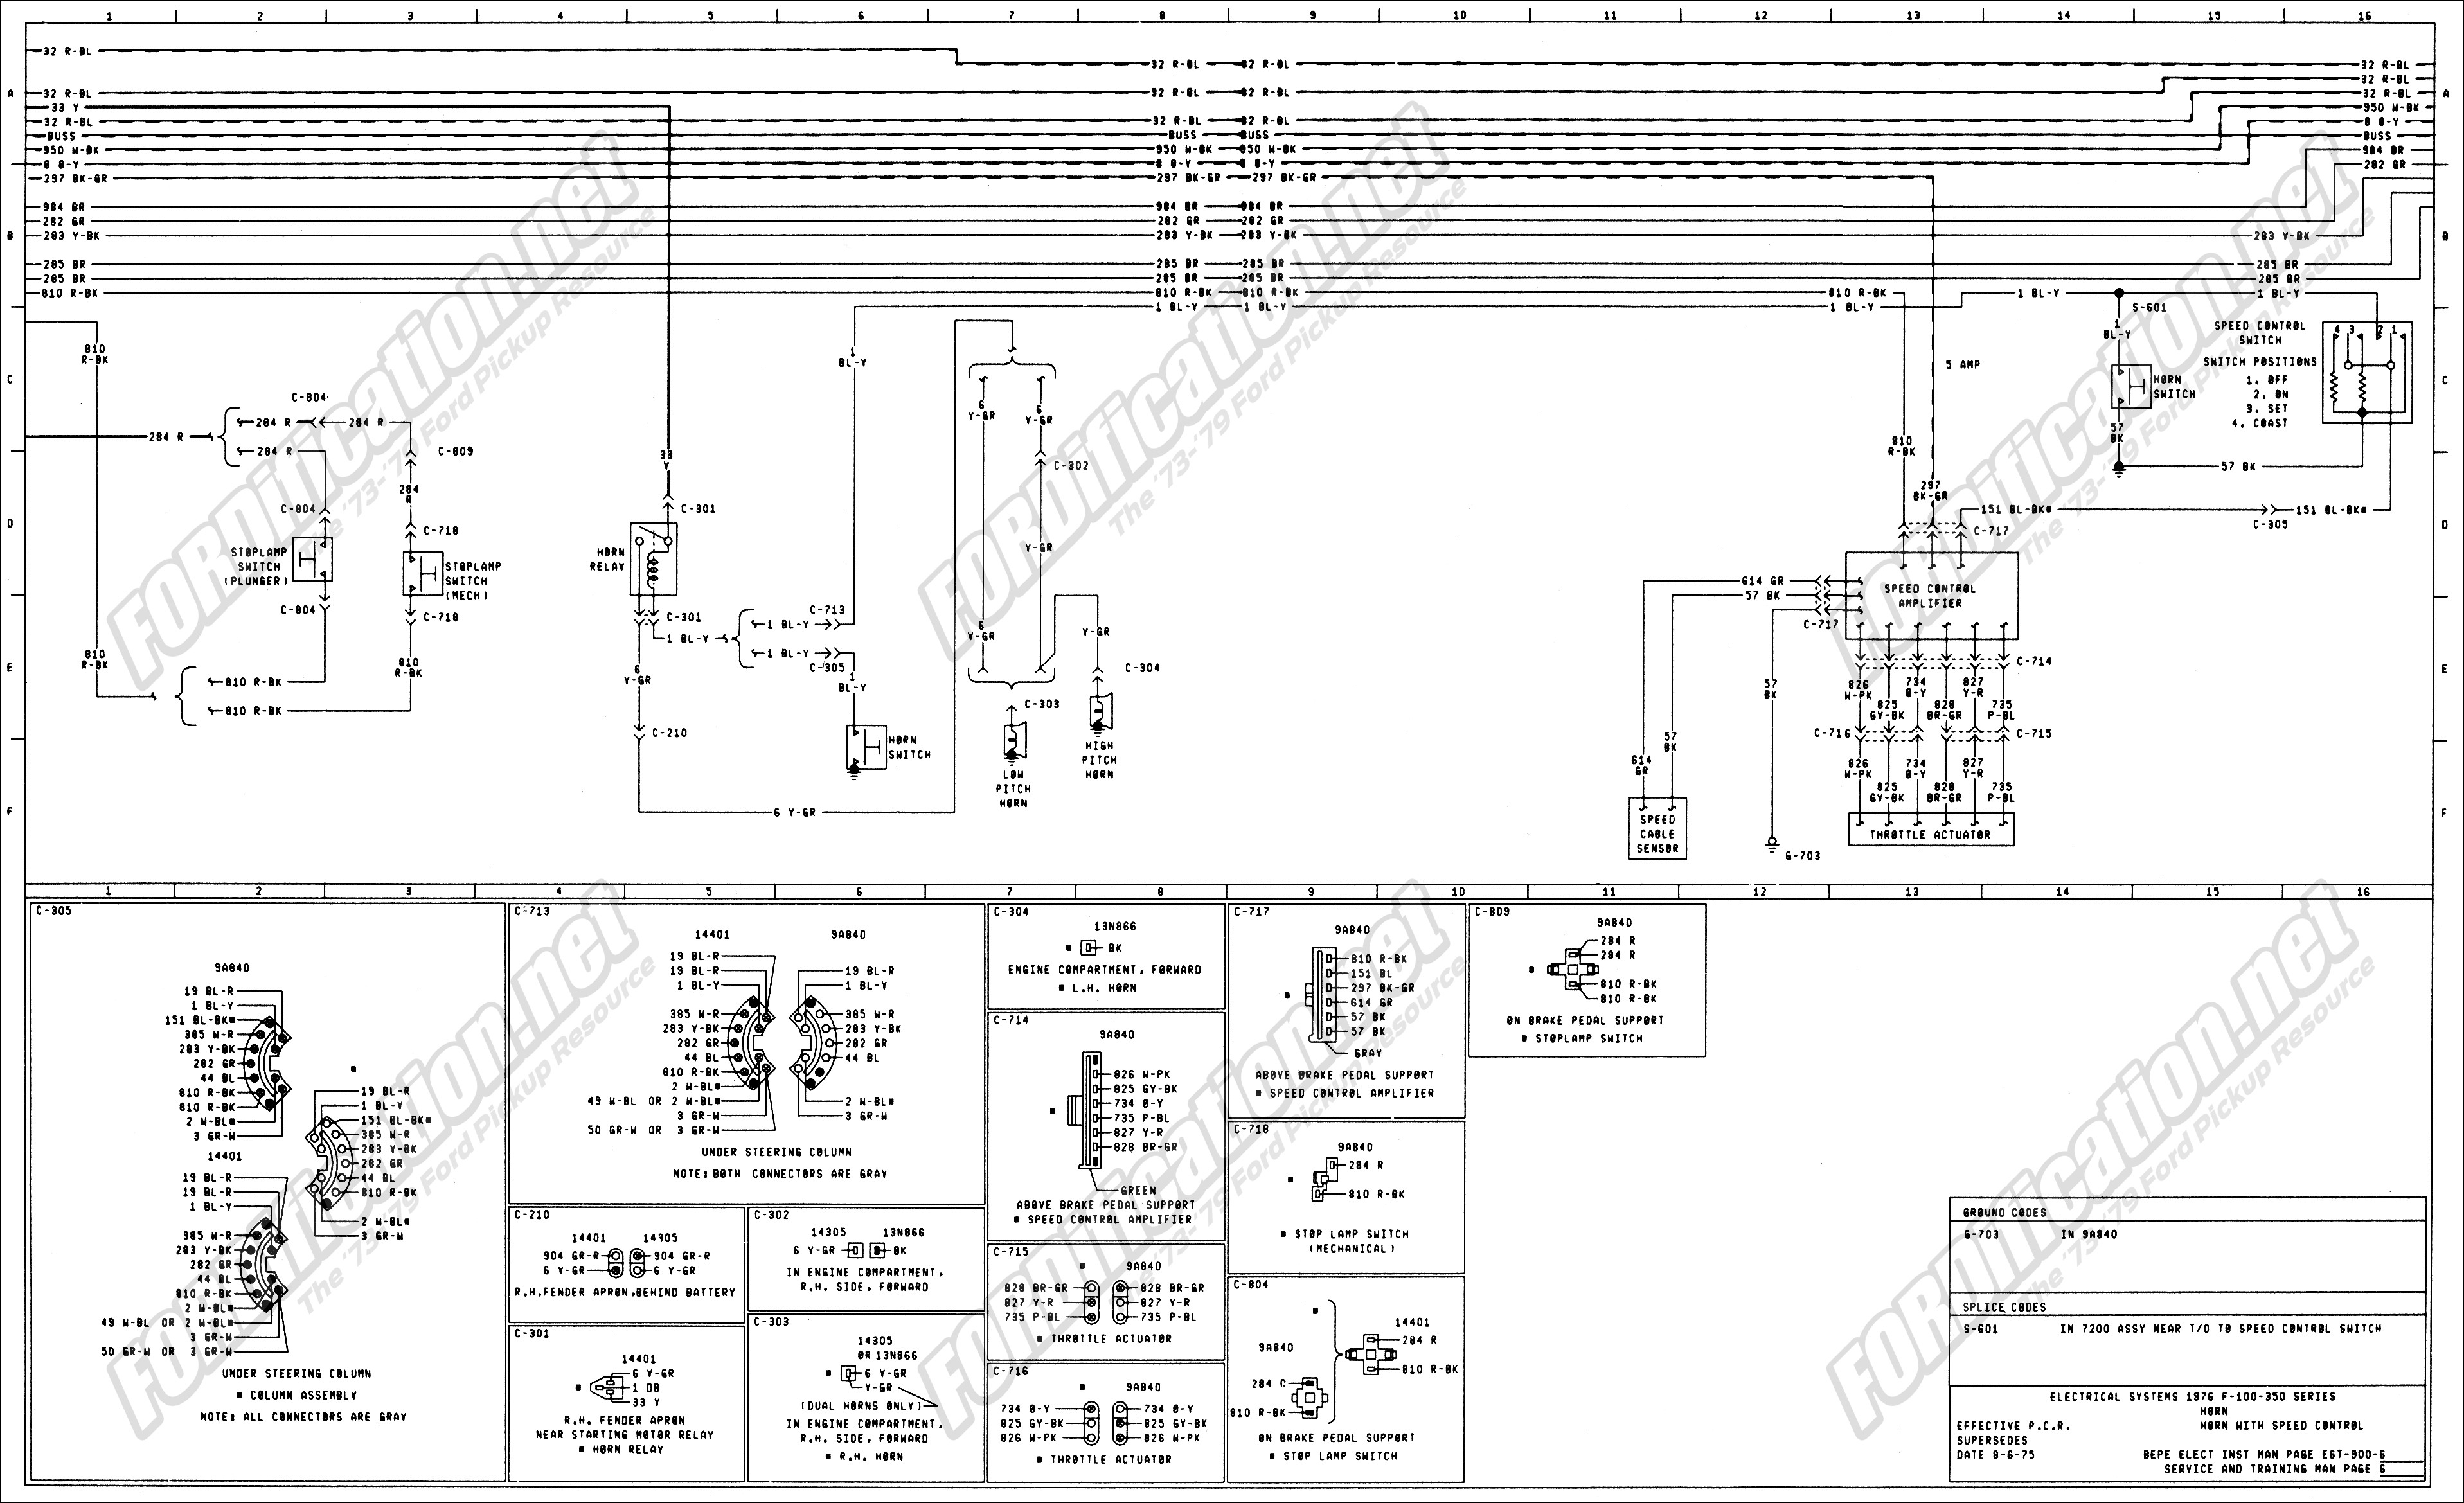 1968 Camaro Voltage Regulator Schematic Example Electrical Wiring 7812 Circuit 1979 Ford Turn Signal Switch Diagram Smart